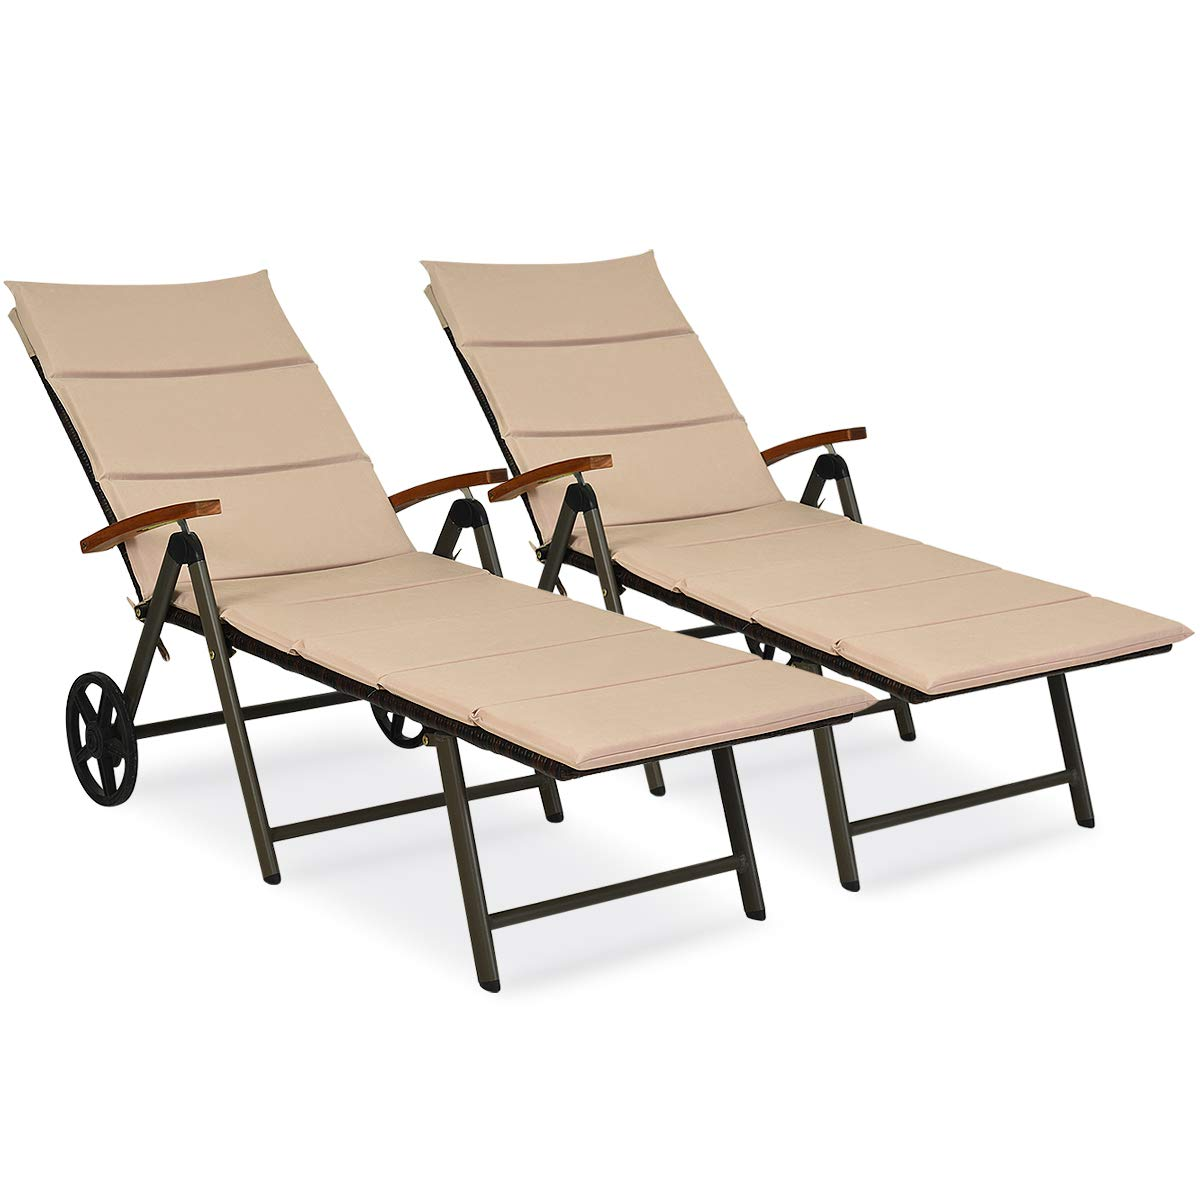 Round Folding Dining Table, Tangkula Outdoor Chaise Lounge Chair Al Buy Online In Japan At Desertcart